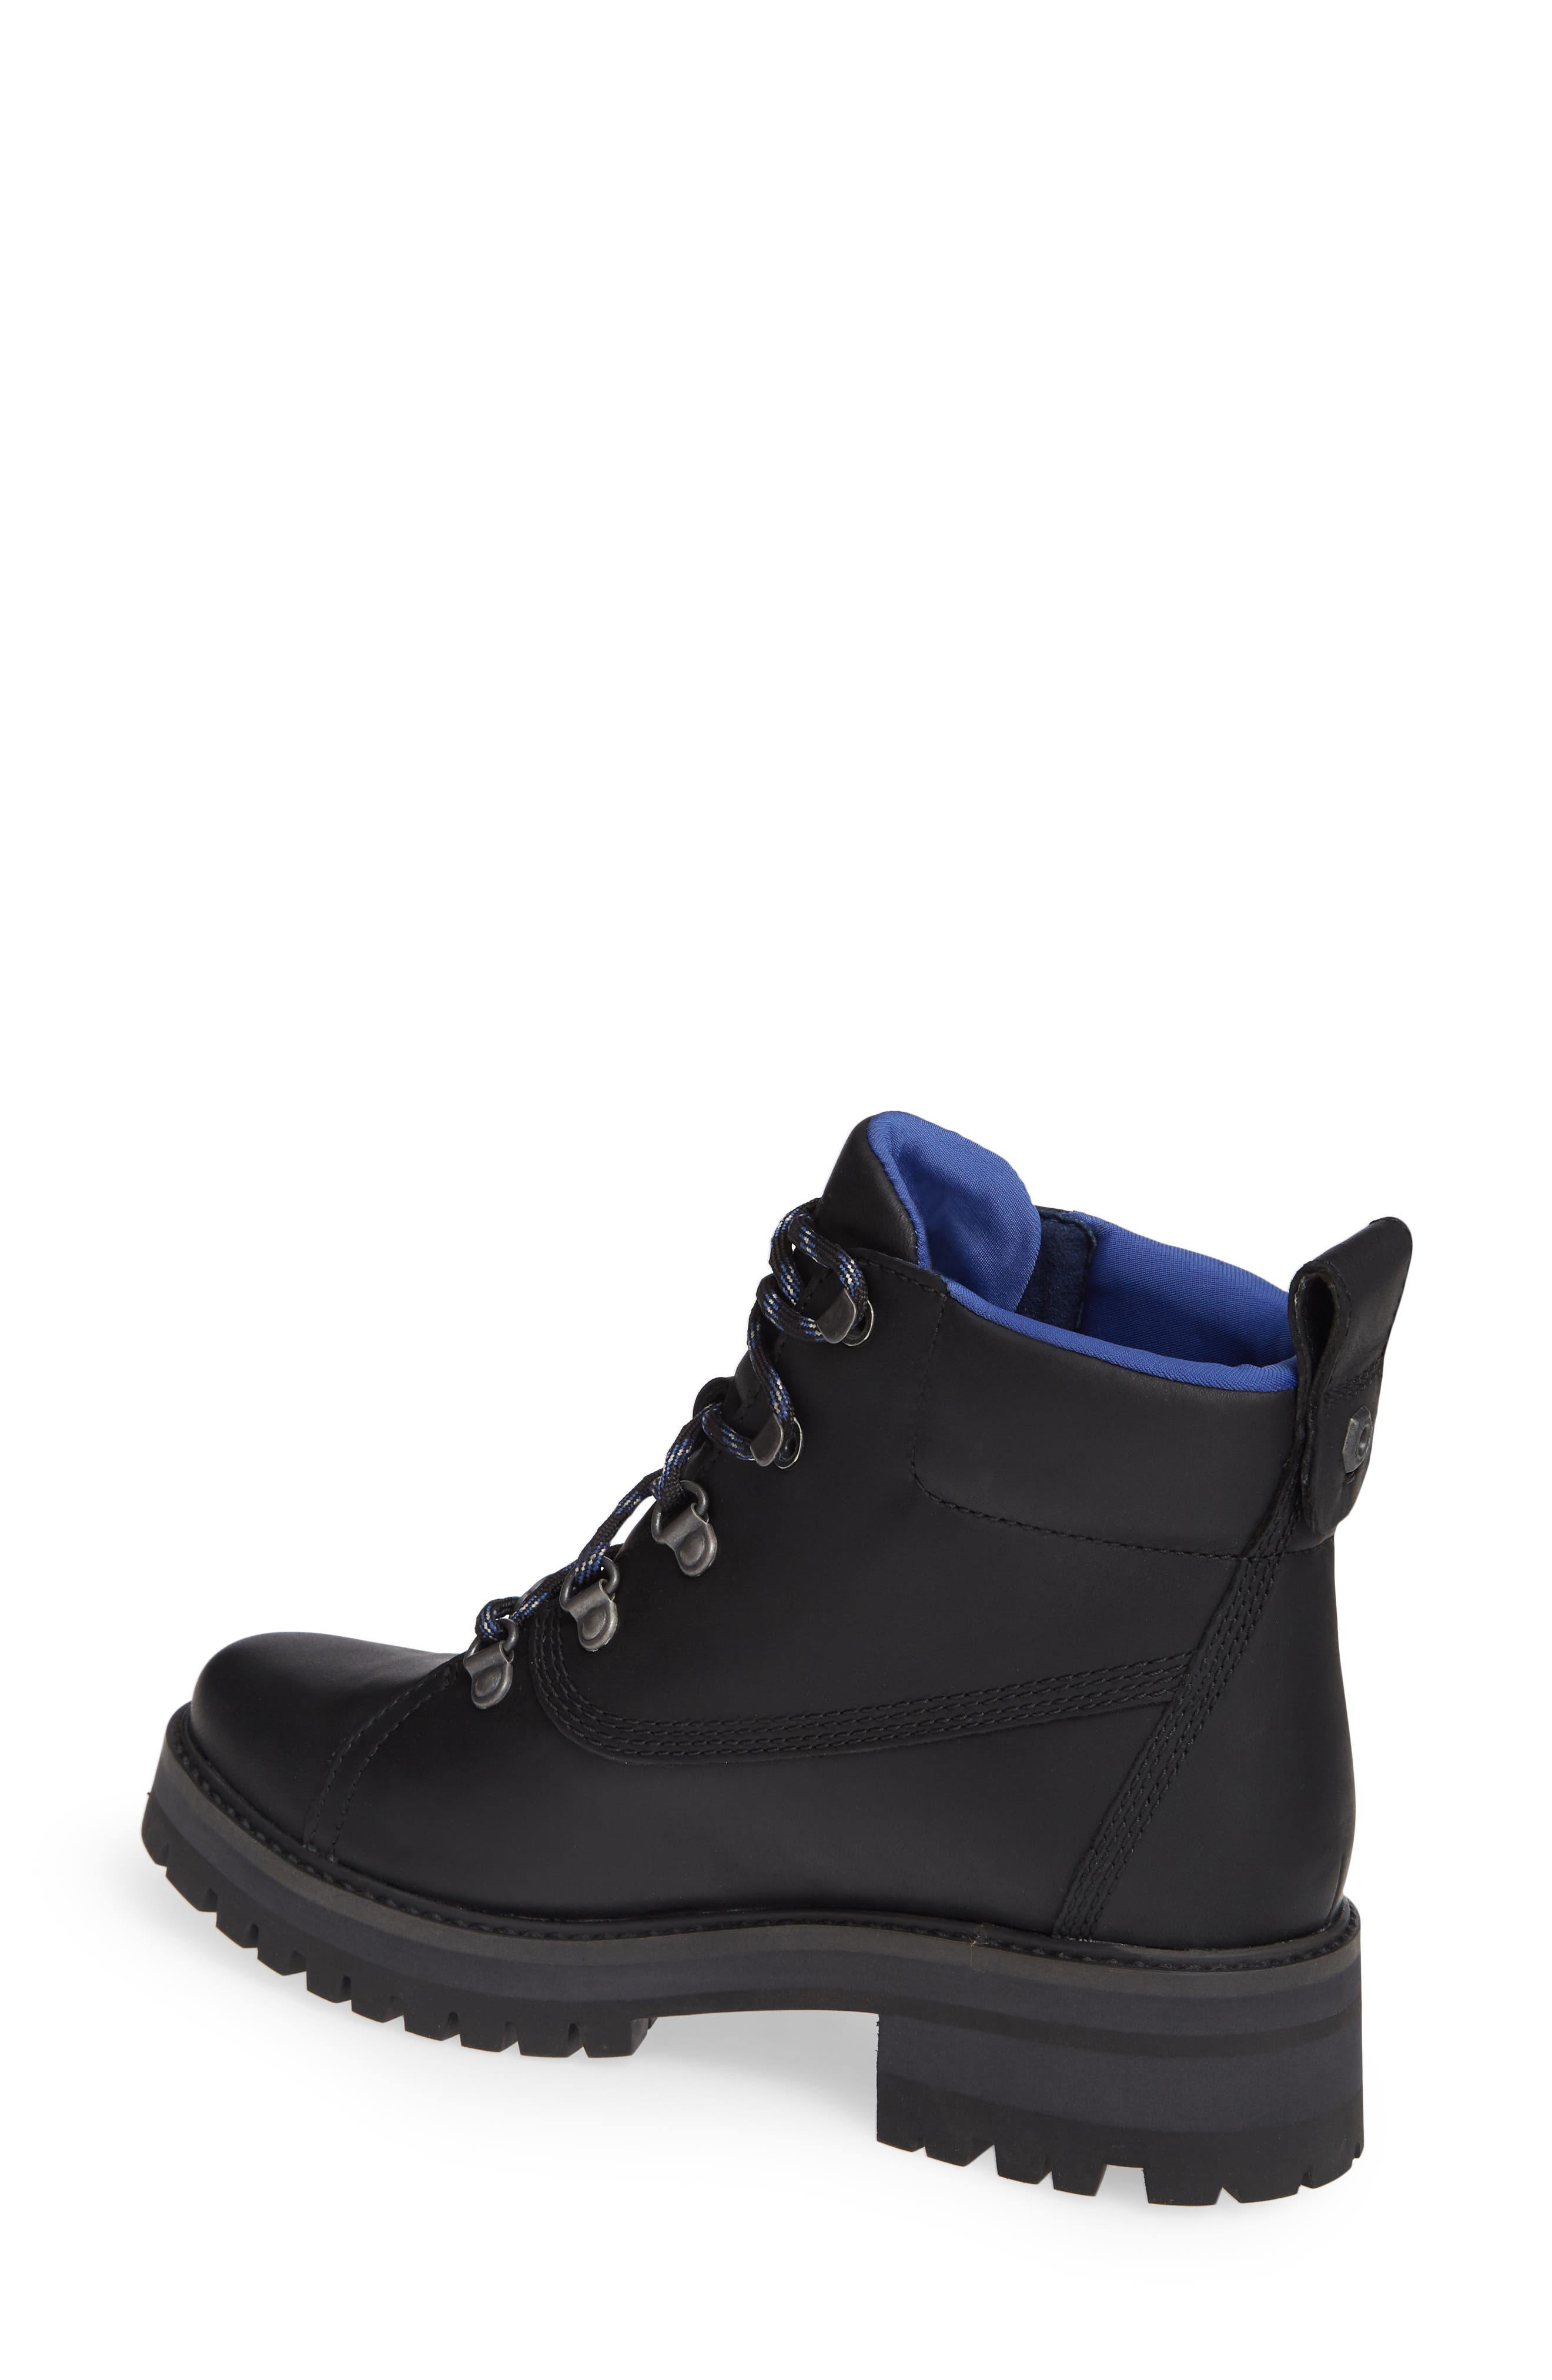 Courmayeur Valley Waterproof Hiking Boot,                             Alternate thumbnail 2, color,                             BLACK NUBUCK BLACK OUT LEATHER